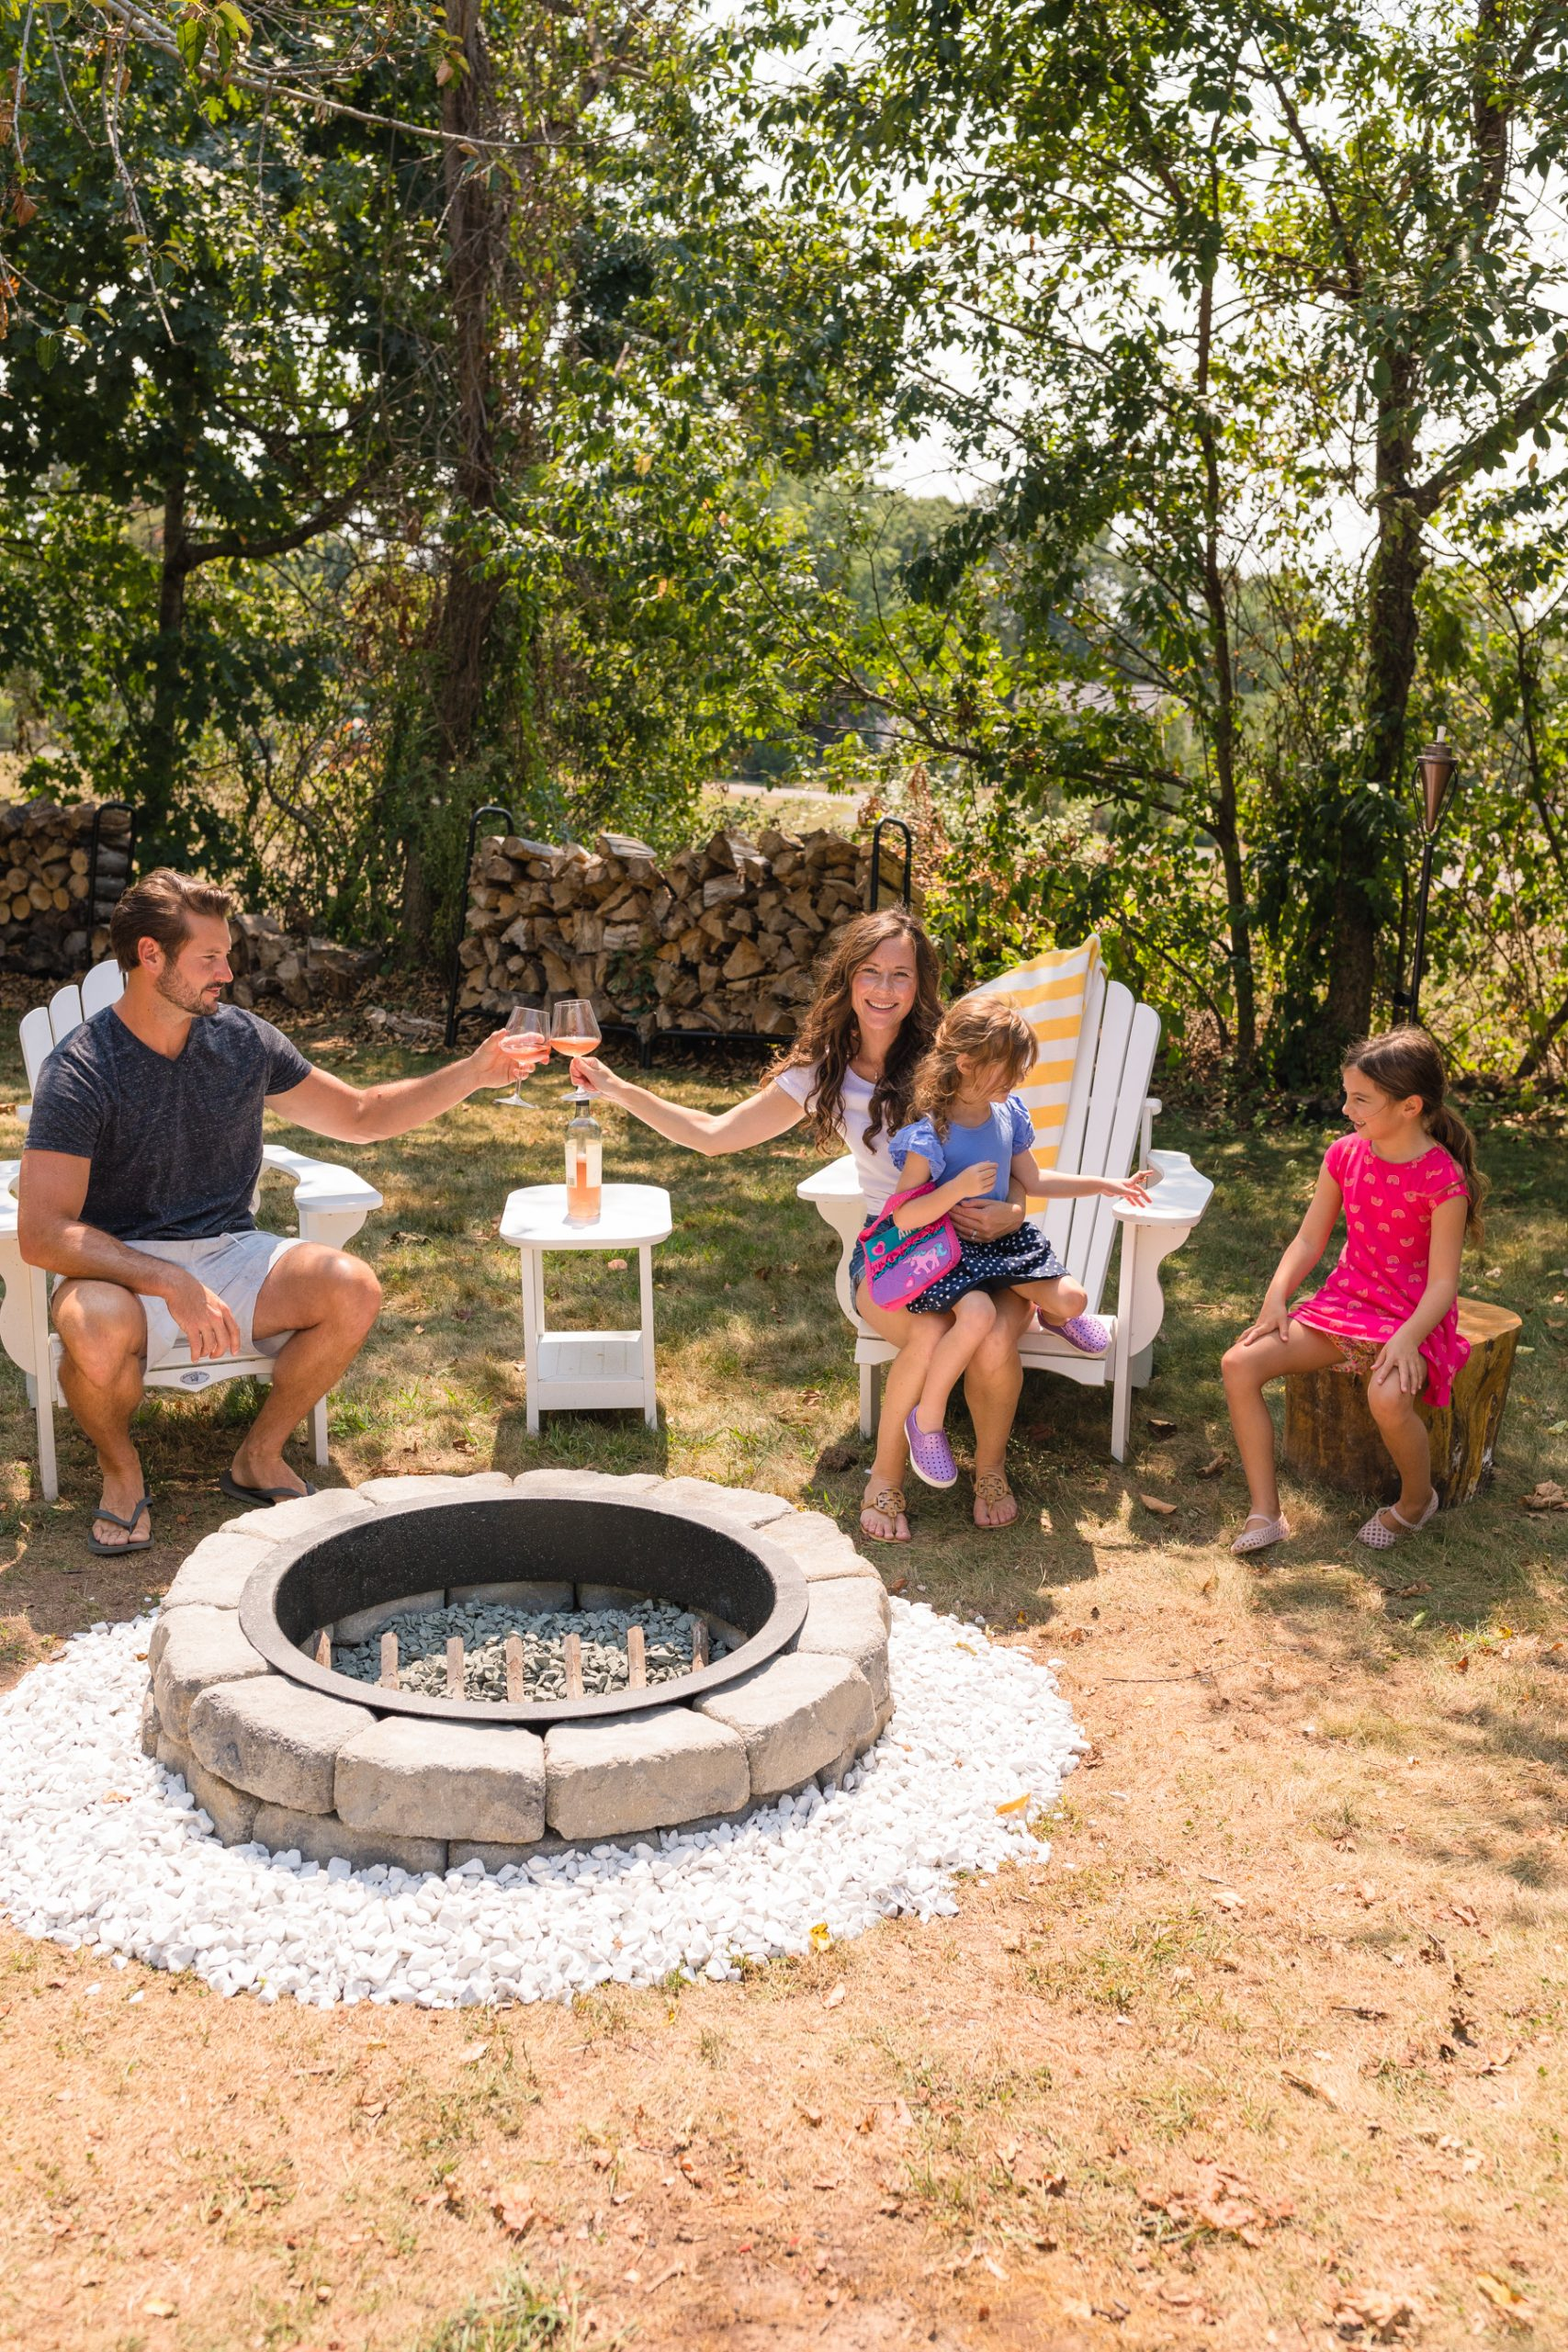 Family sitting in Adirondack chairs around stone fire pit in late August 2020